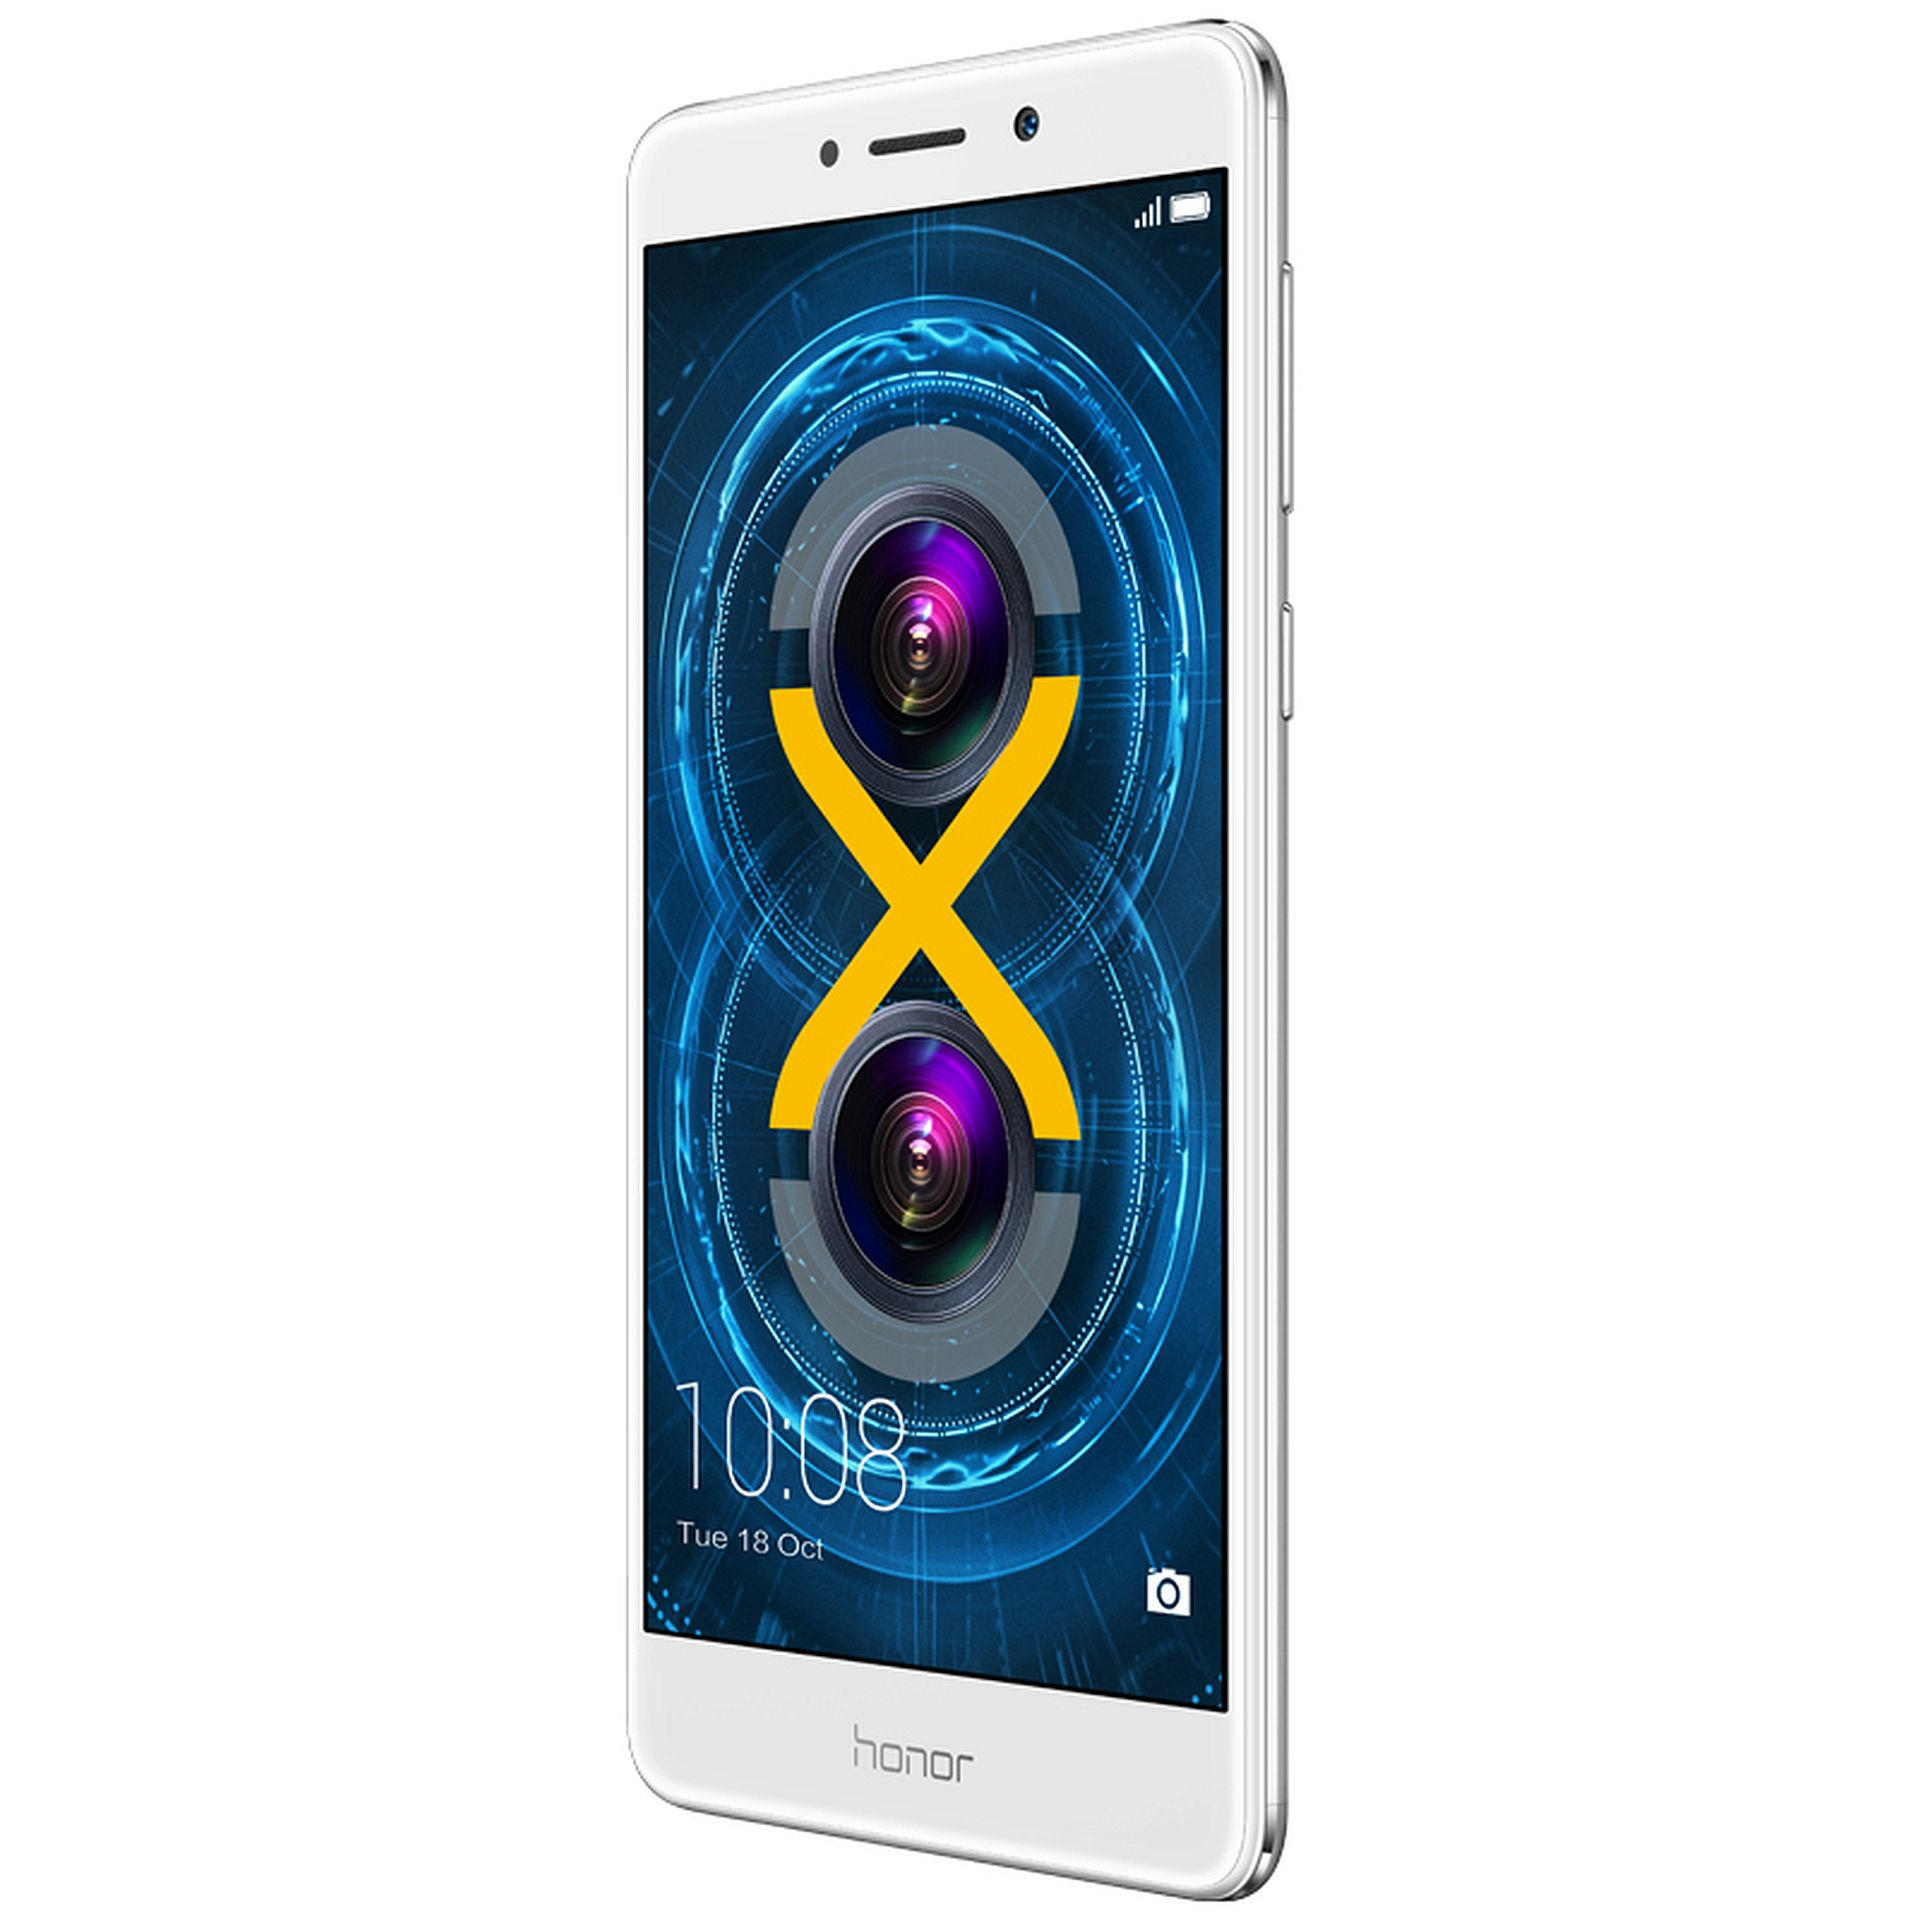 http://www.telefonguru.hu/images/content/Honor 6X Silver front_small.jpg